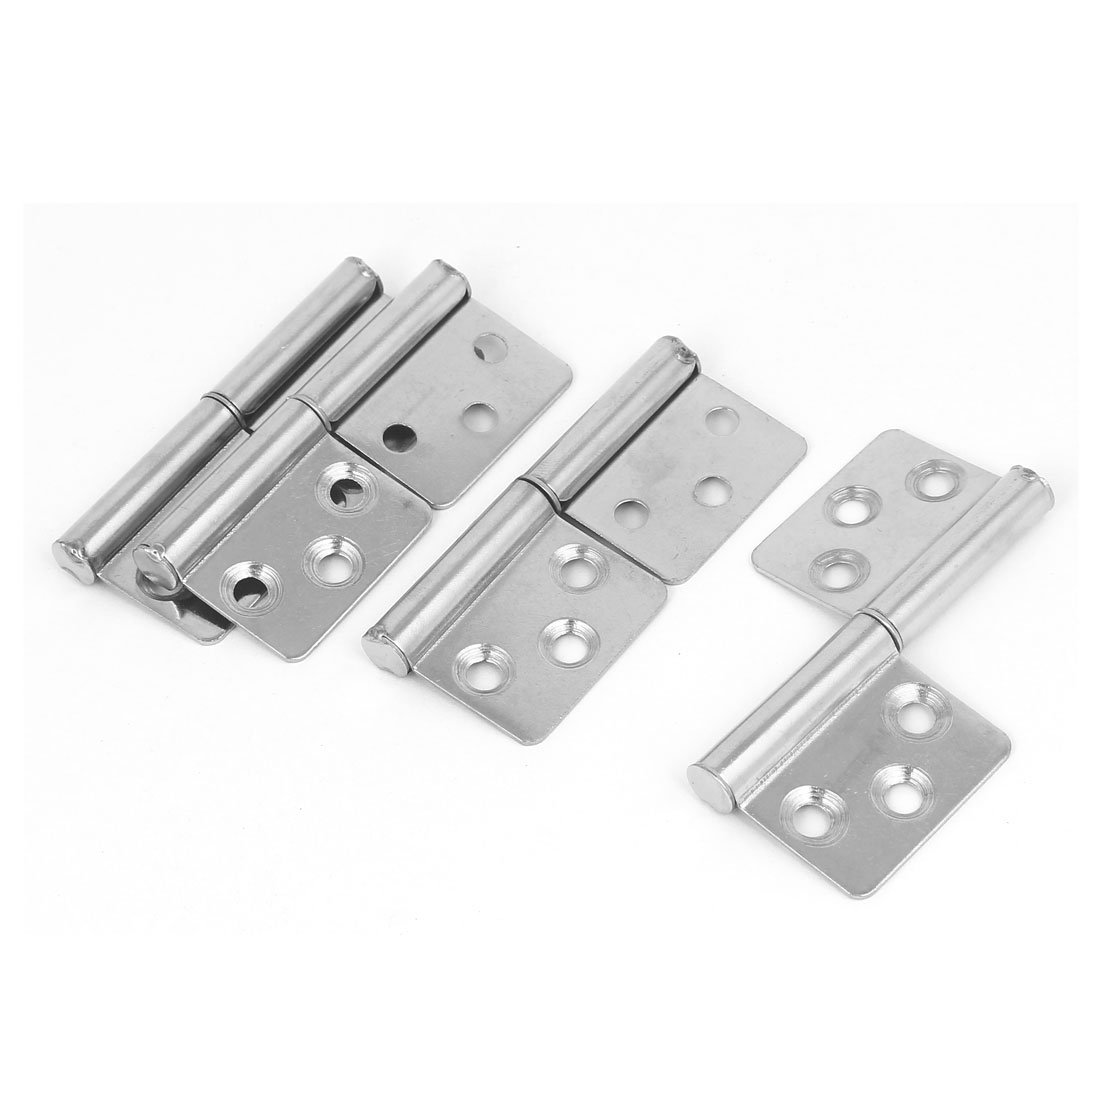 uxcell 3-inch Long Stainless Steel Two Leaves Detachable Flag Hinge 4pcs for Window Door